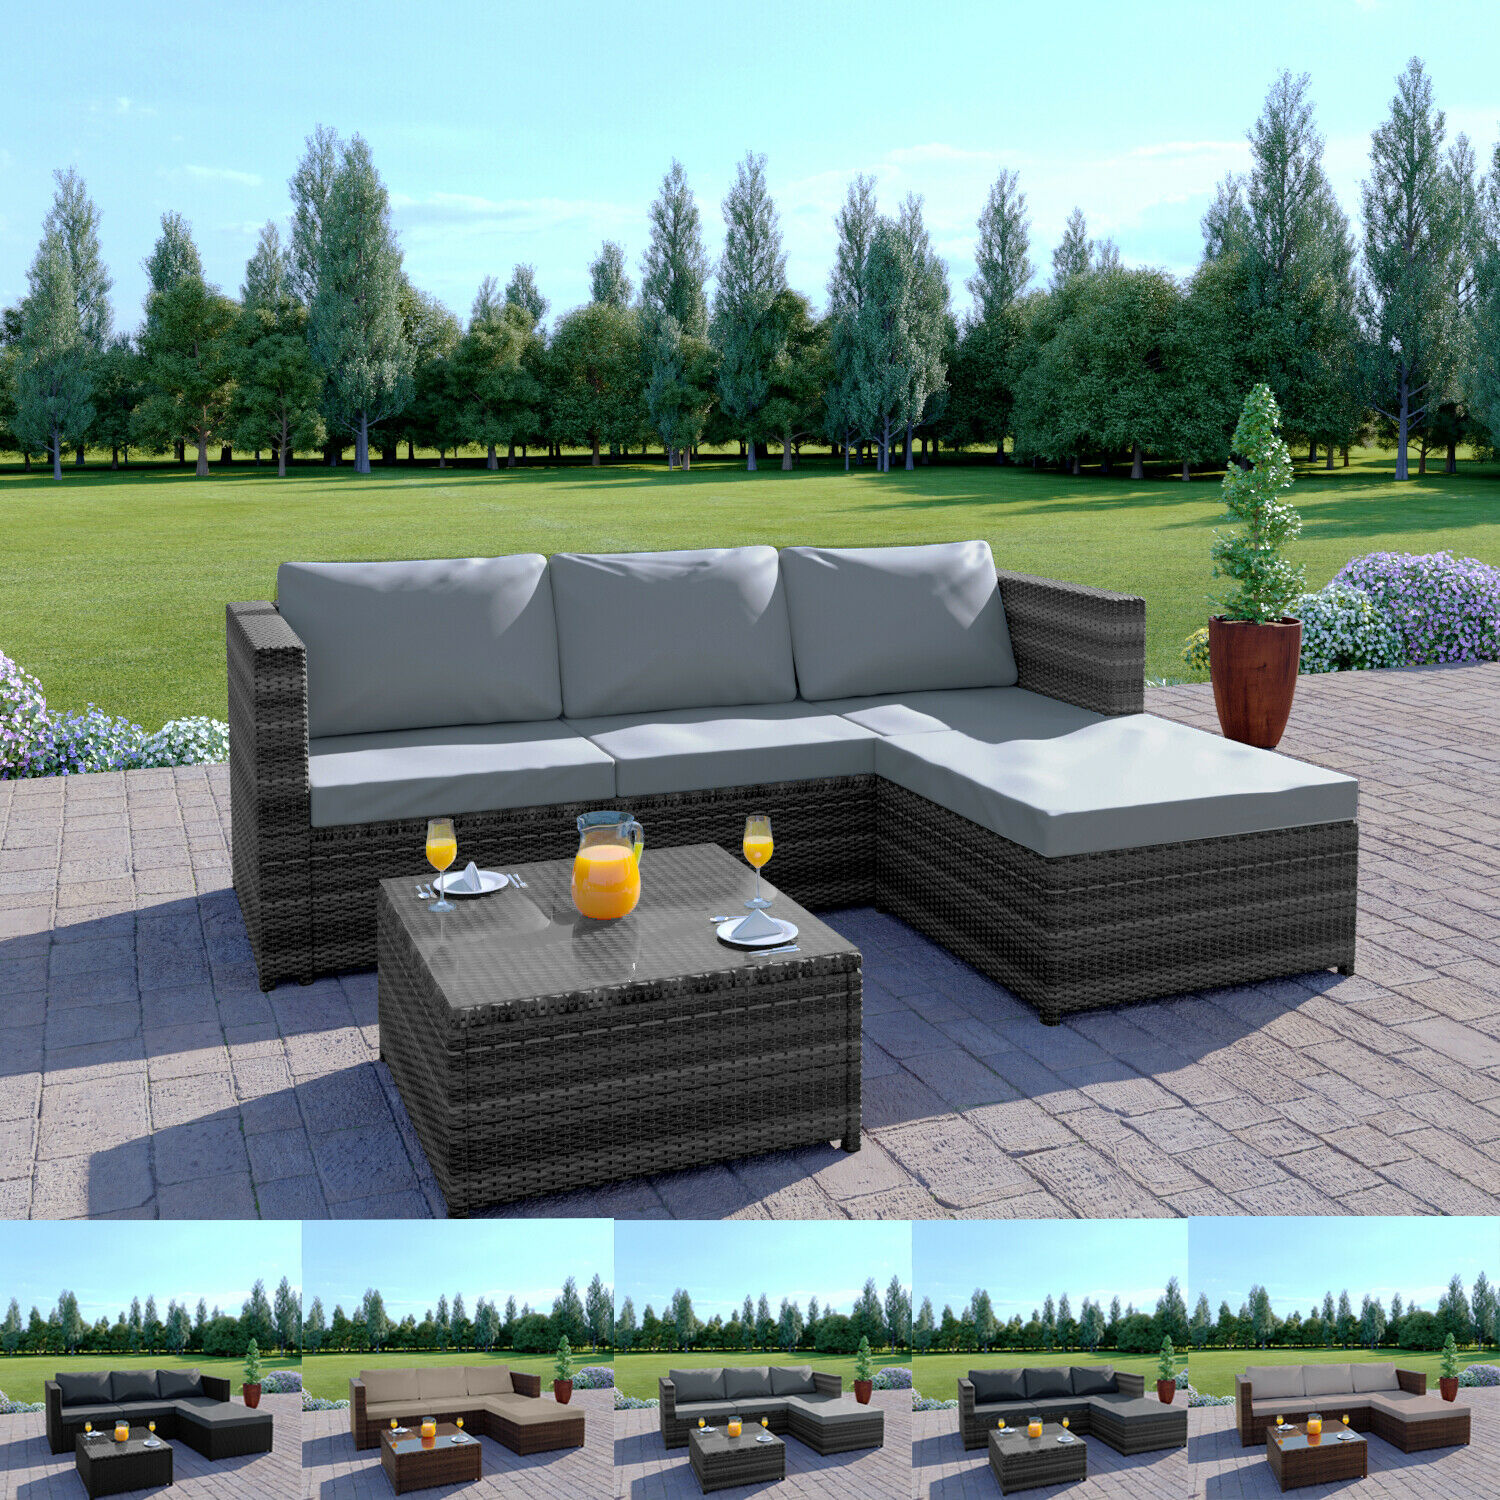 Garden Furniture - Rattan Garden Corner Sofa Table Chair Furniture Set Grey Brown Black Patio